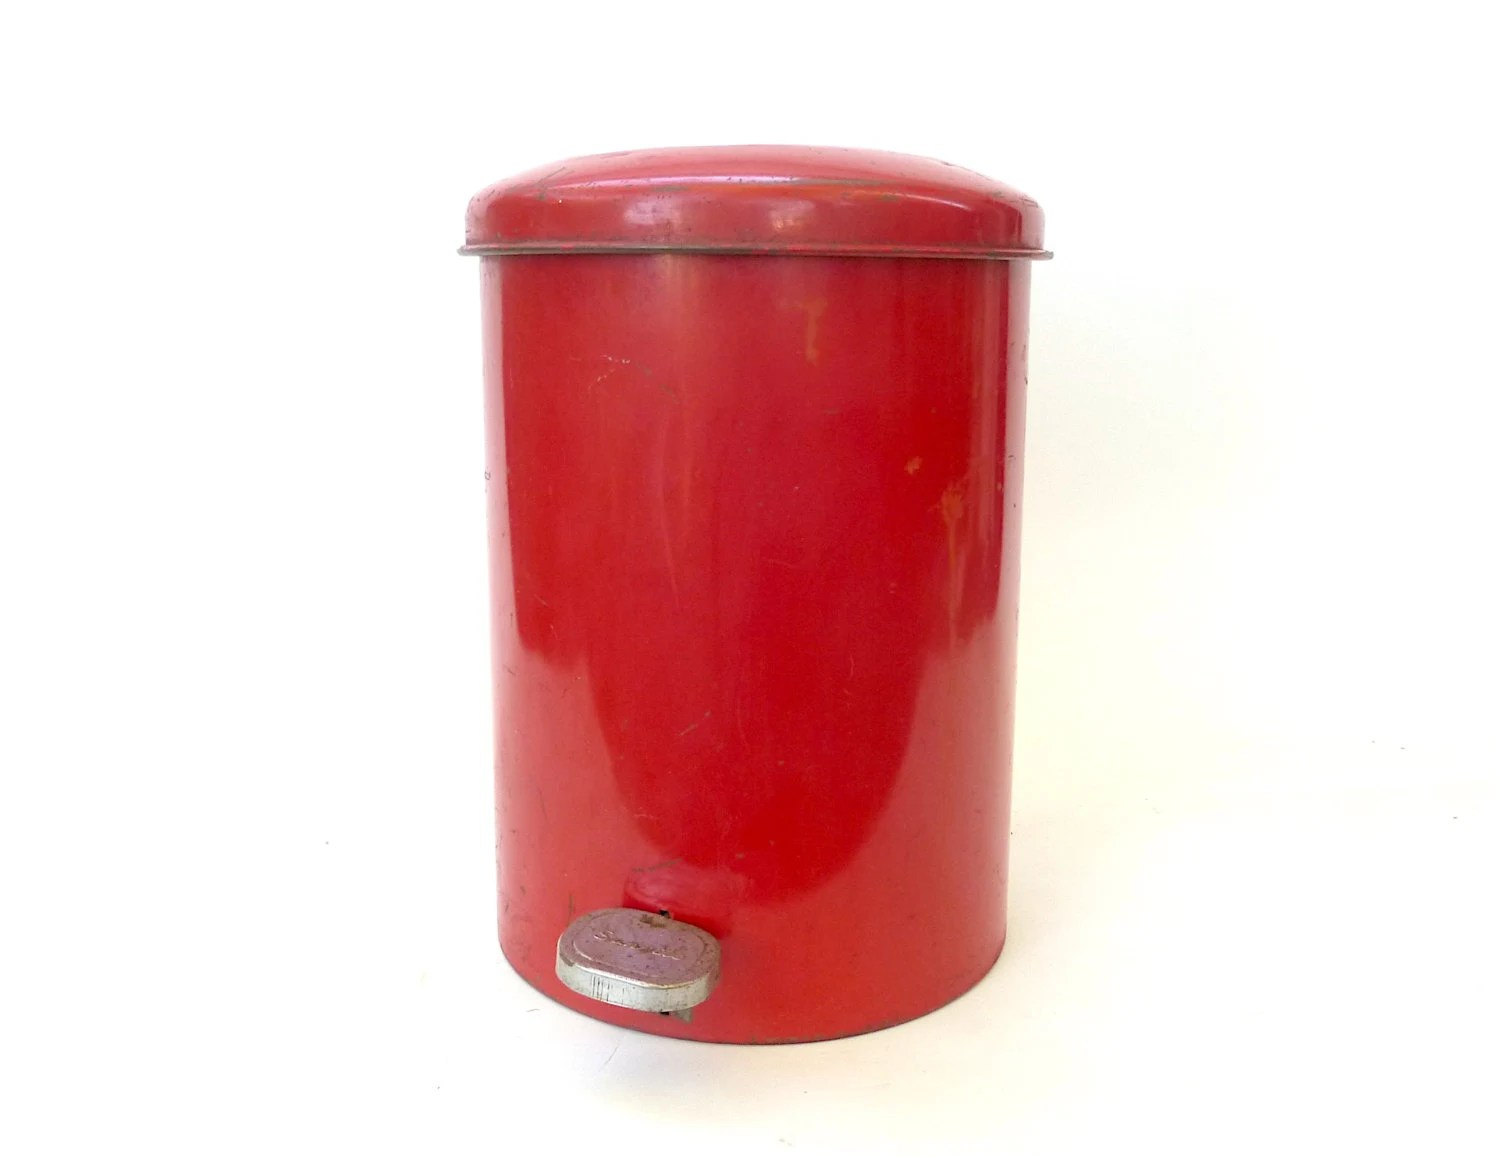 Small Metal Trash Cans With Lids Vintage Red Metal Sanette Industrial Waste Basket With Lid